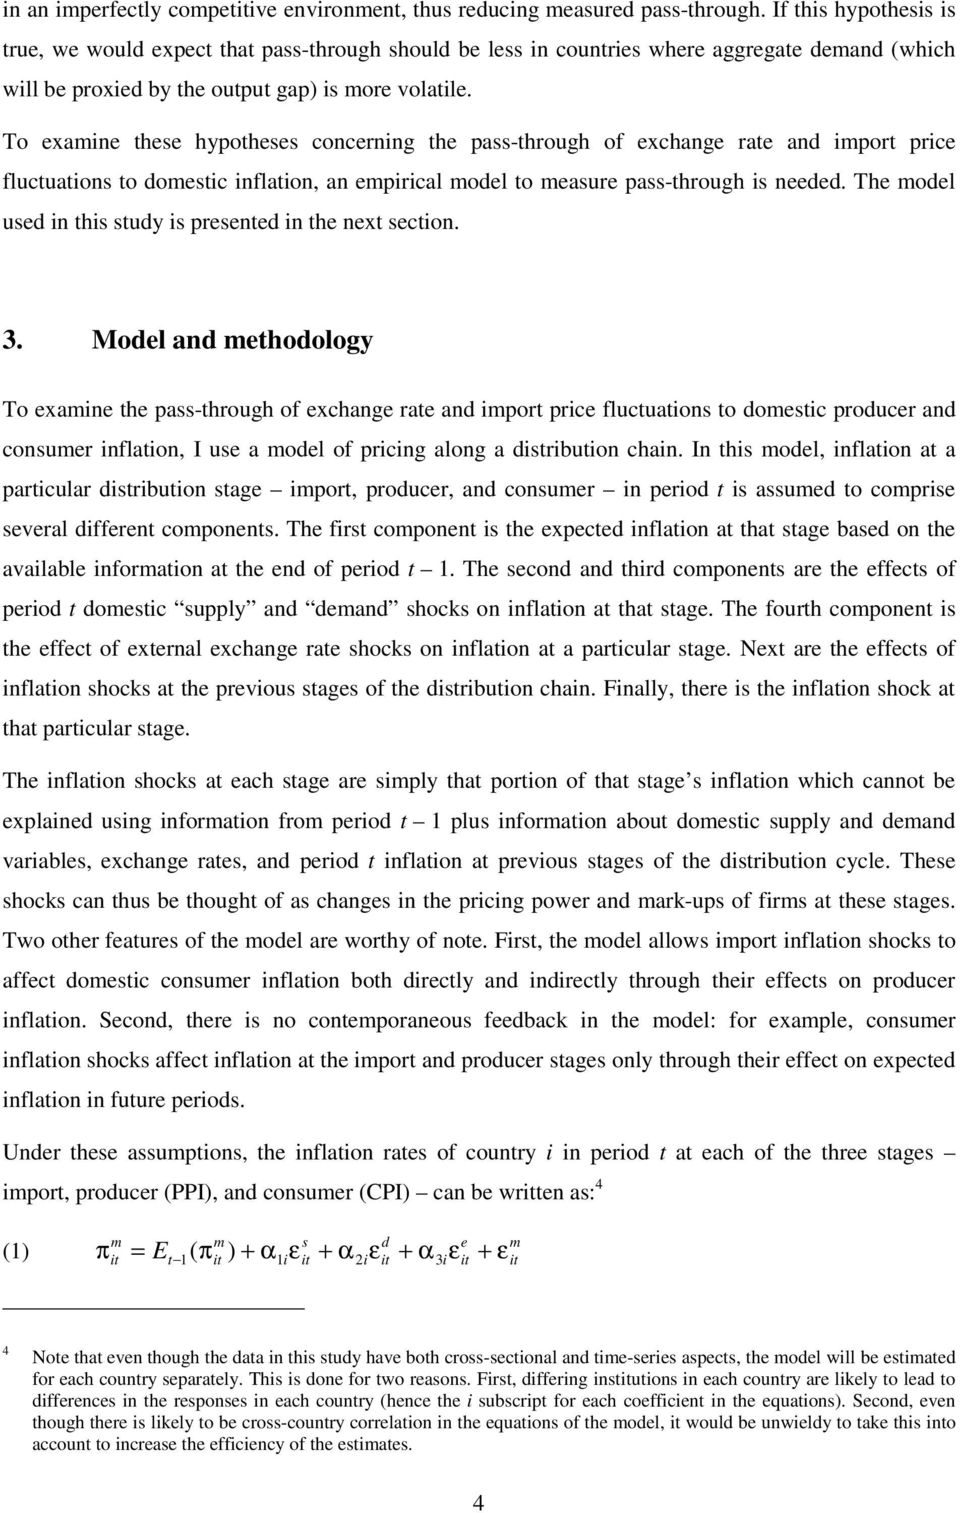 To examine these hypotheses concerning the pass-through of exchange rate and import price fluctuations to domestic inflation, an empirical model to measure pass-through is needed.